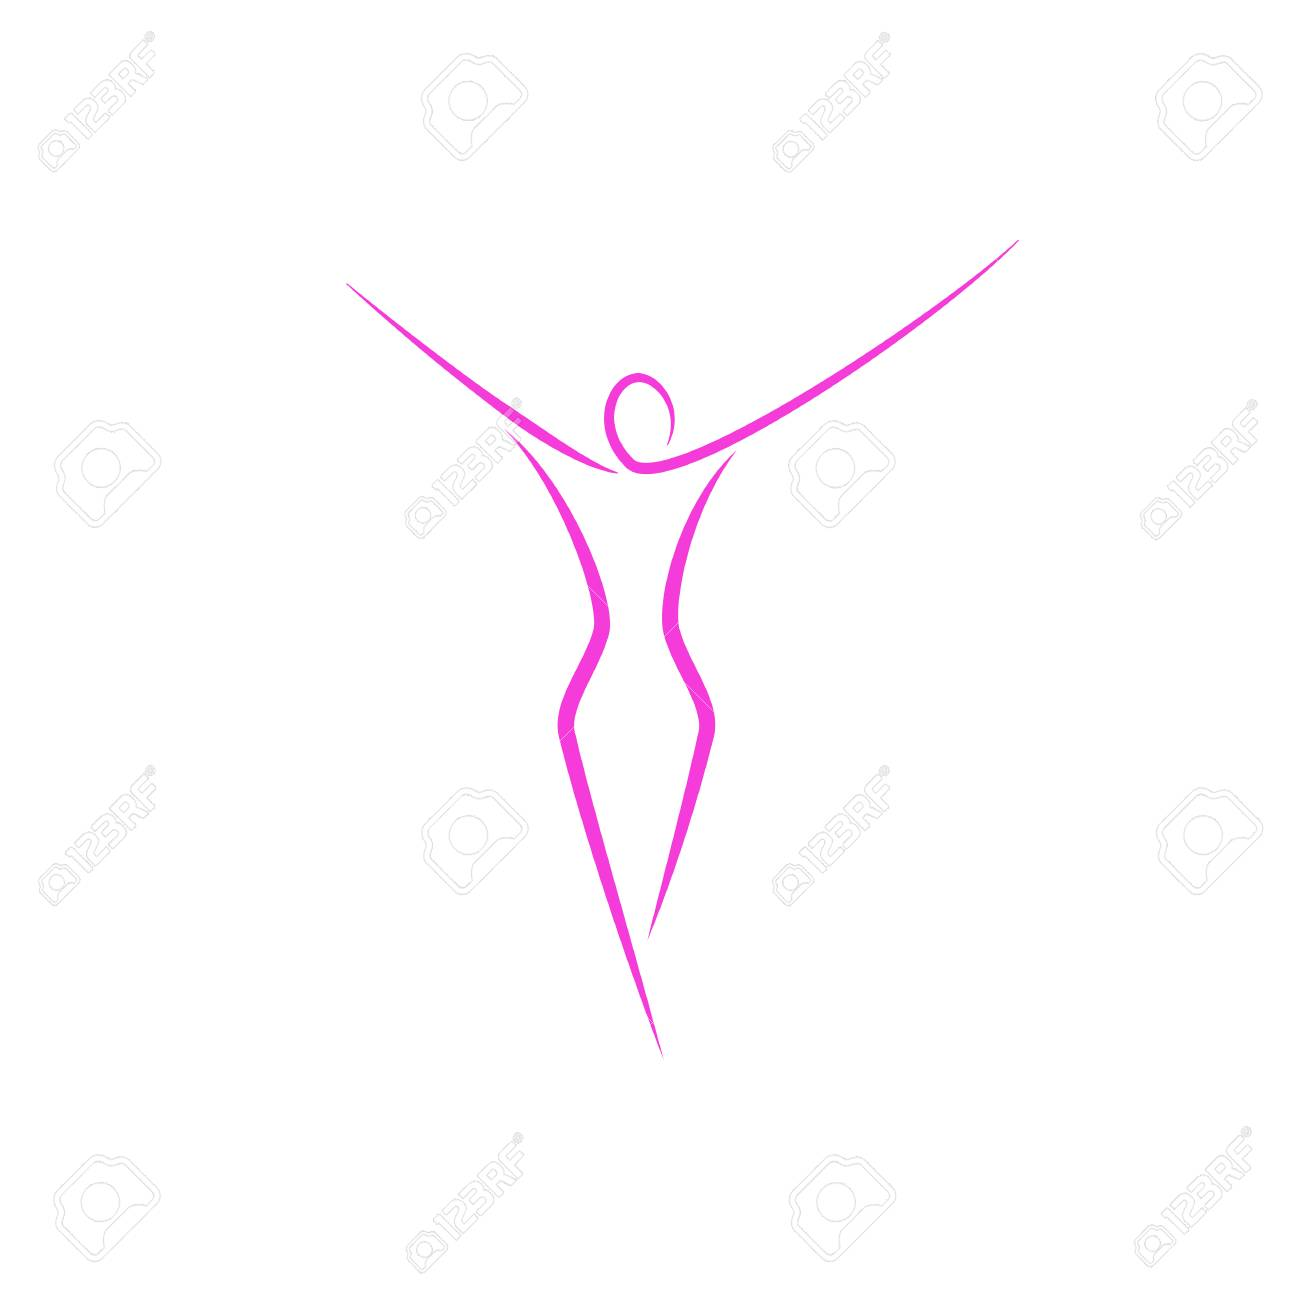 Silhouette of a slender girl logo, slim figure of a young attractive woman fitness model in a linear art style, a emblem template for a spa salon or fashion show - 96372046